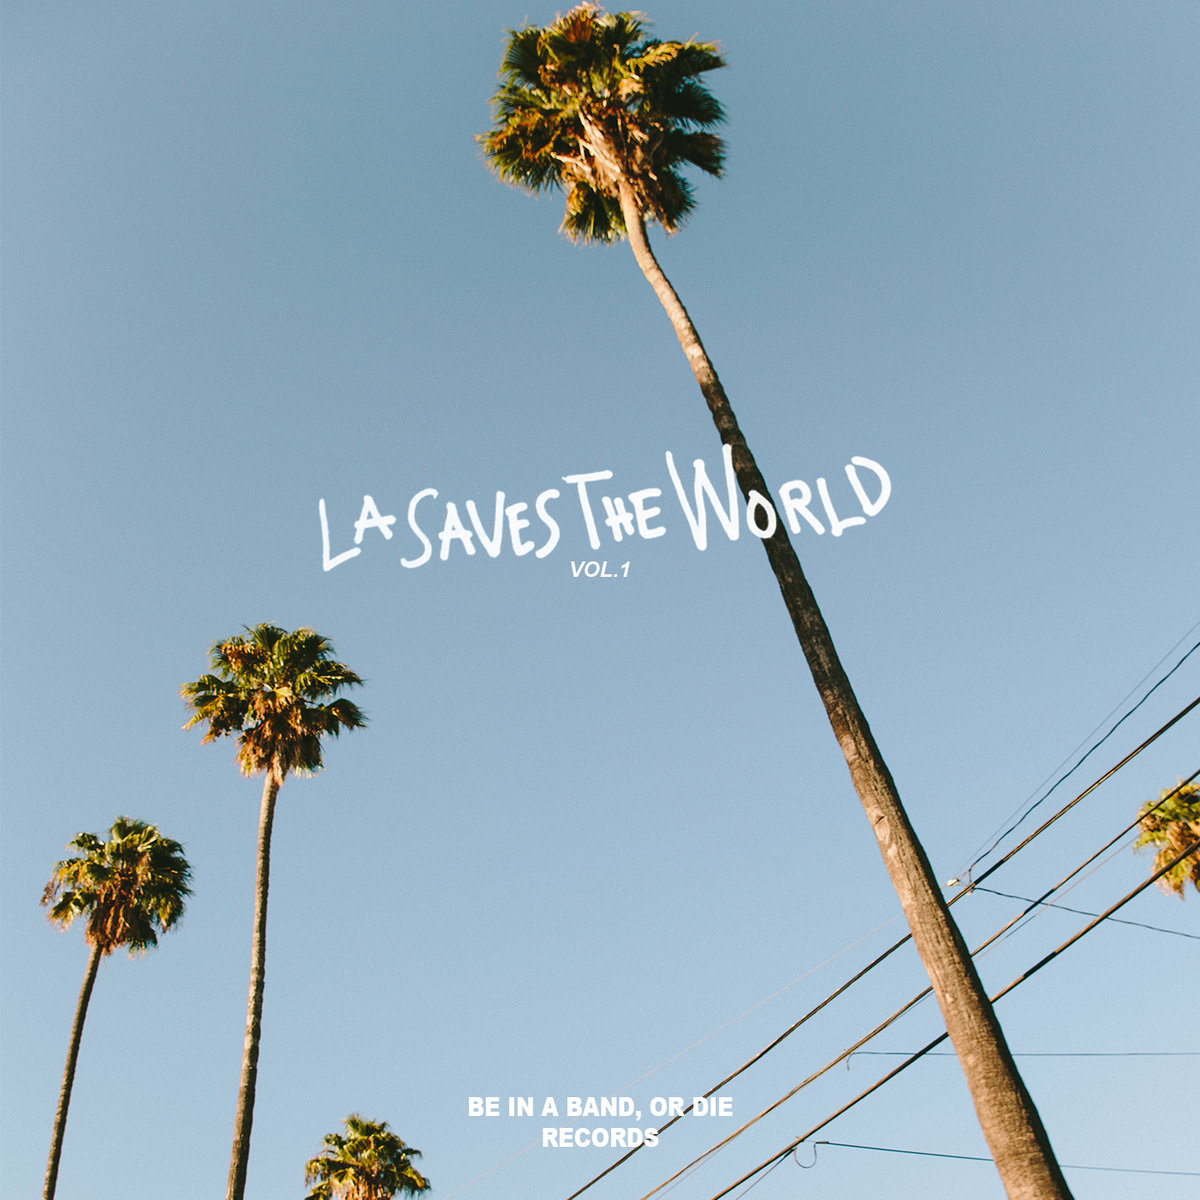 LA SAVES THE WORLD Vol.1 - BE IN A BAND, OR DIE RECORDS, 2018.